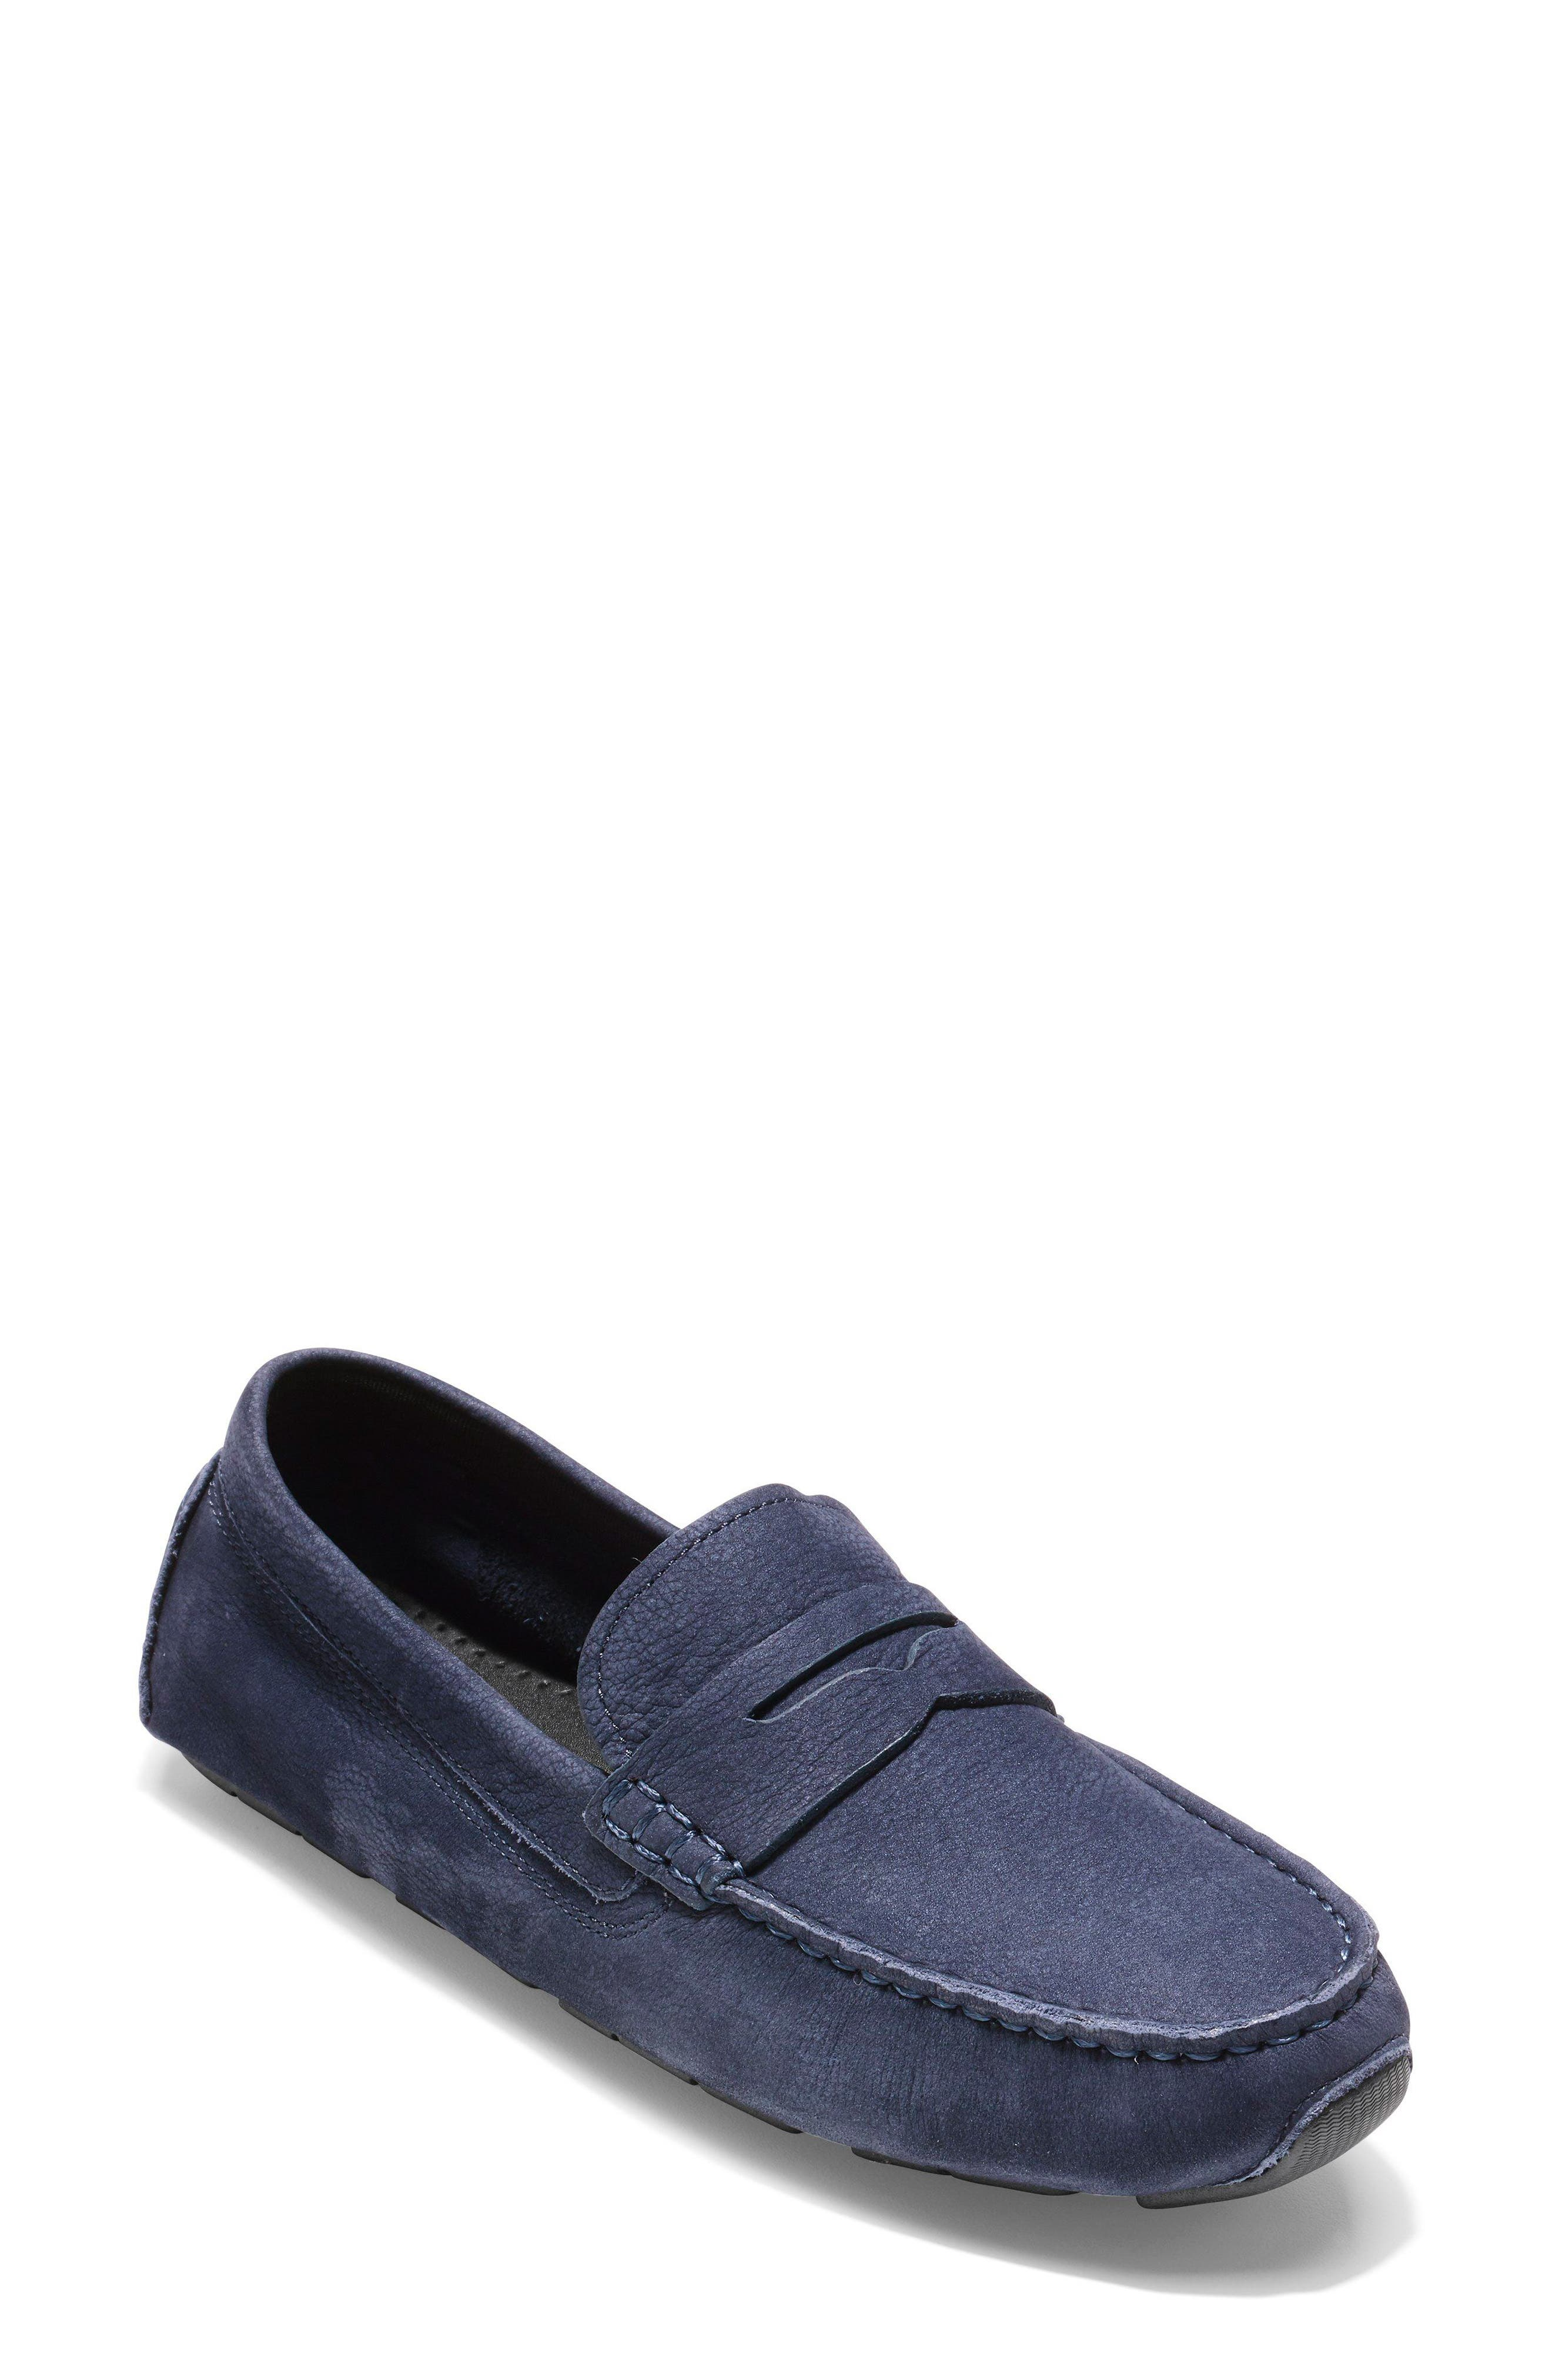 Alternate Image 1 Selected - Cole Haan Rodeo Penny Driving Loafer (Women)